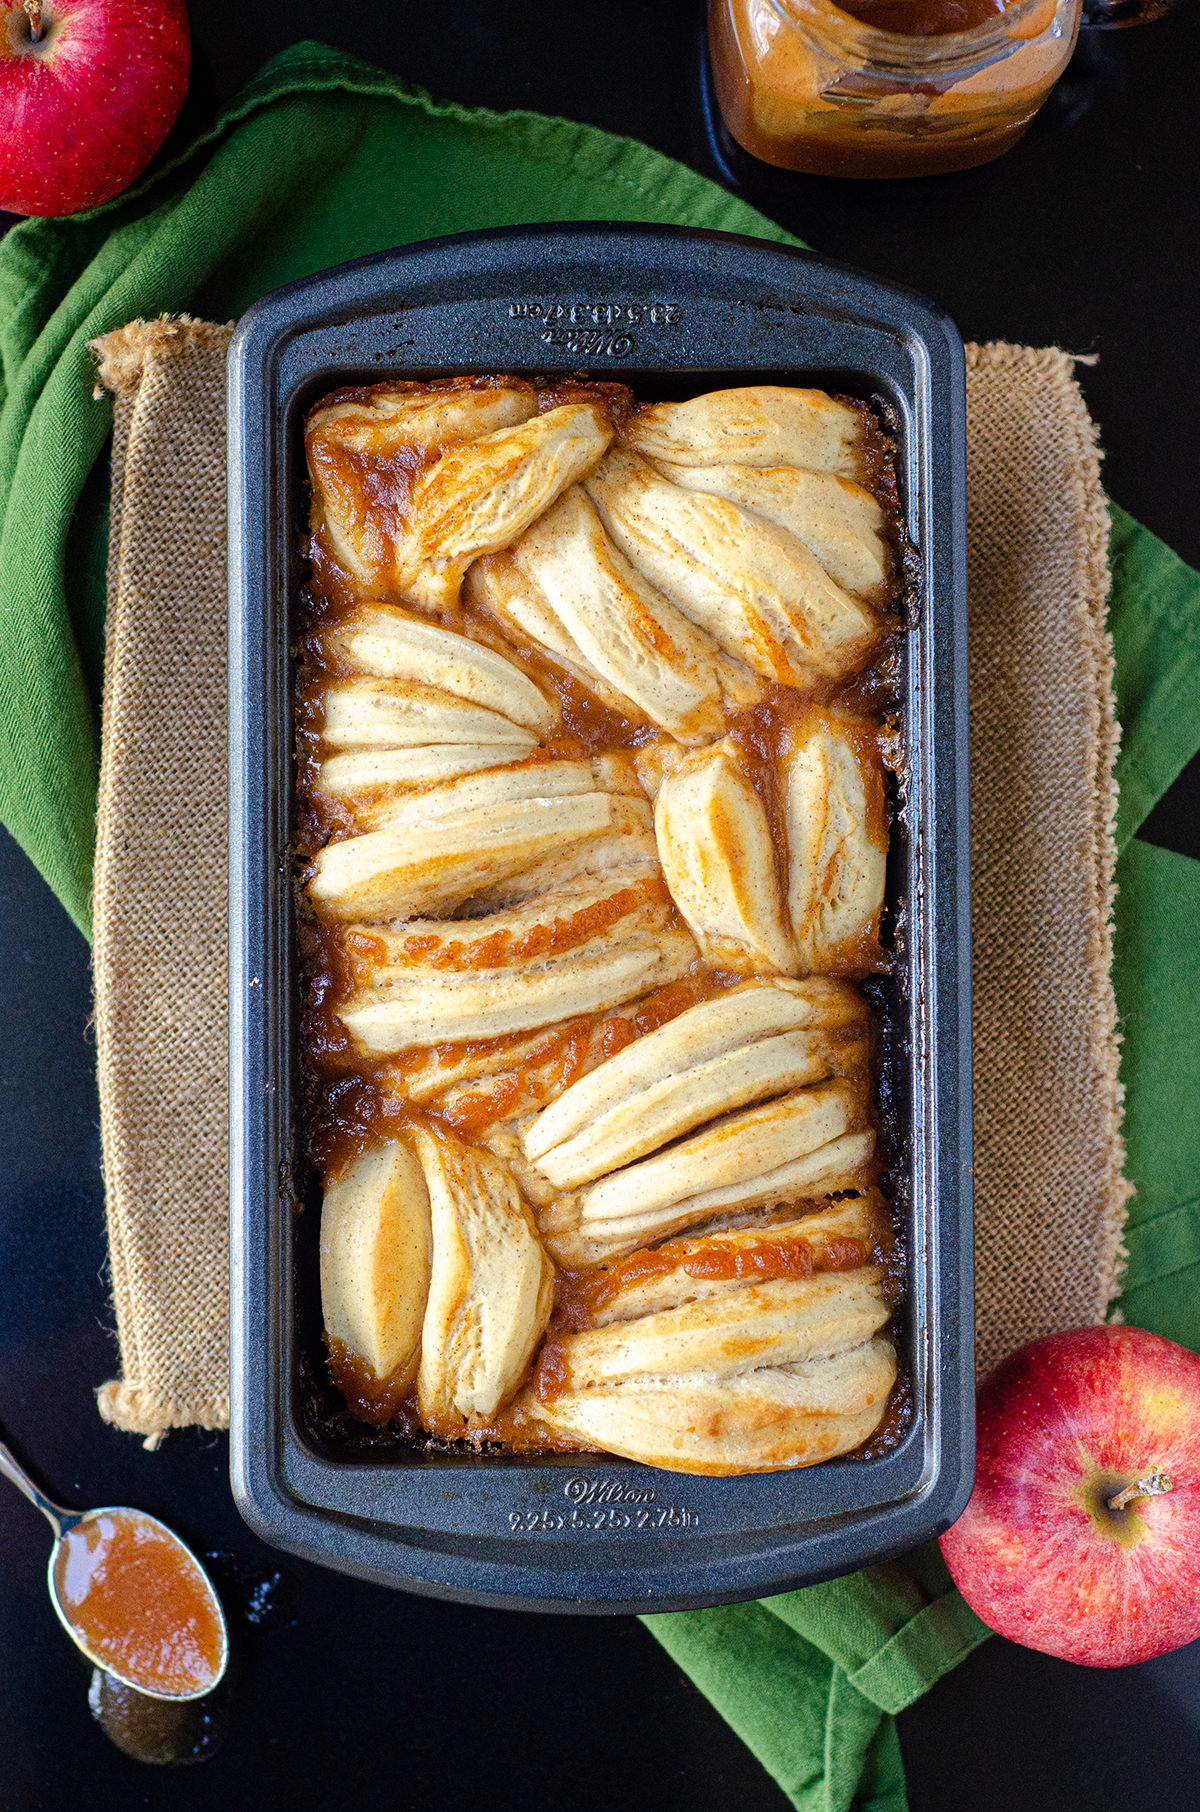 Soft and fluffy pull-apart bread spiced with cinnamon and spread with homemade apple butter.